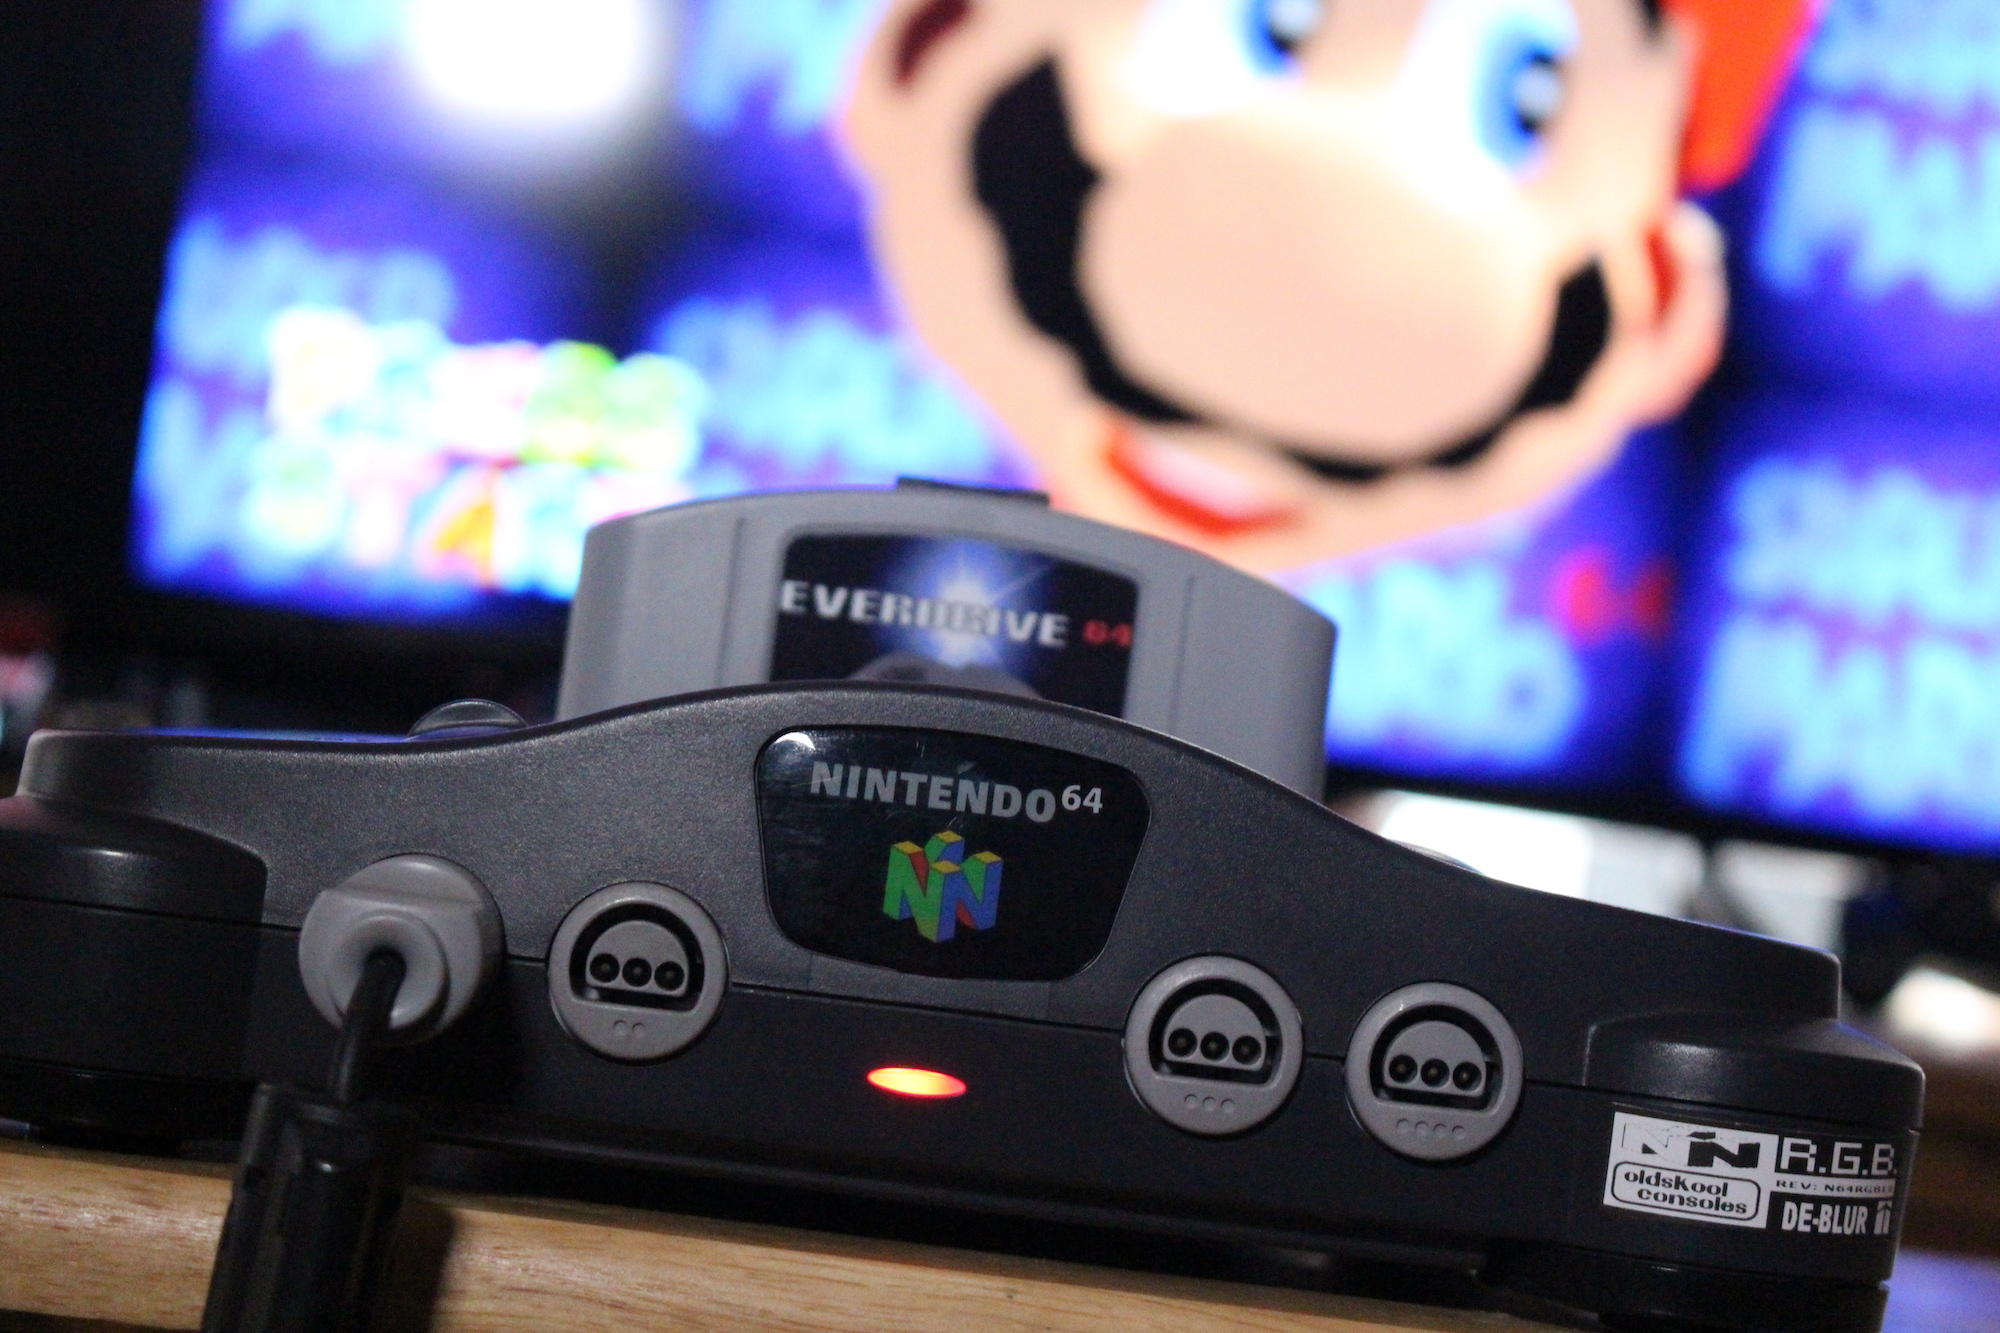 Getting The Best Picture Out Of Your Nintendo 64: The RGB